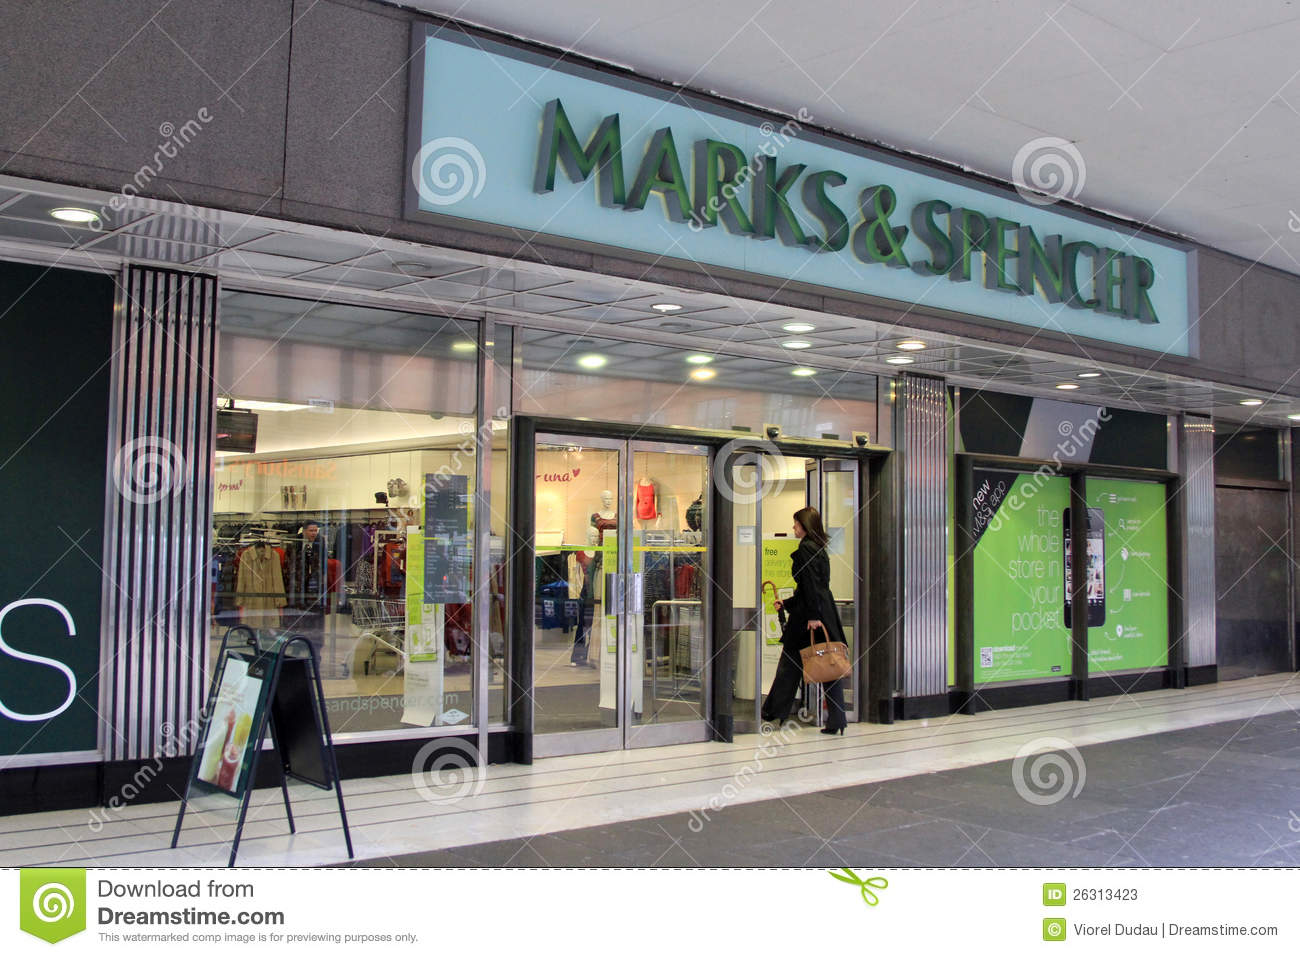 M&S store closures: full list of shops announced so far